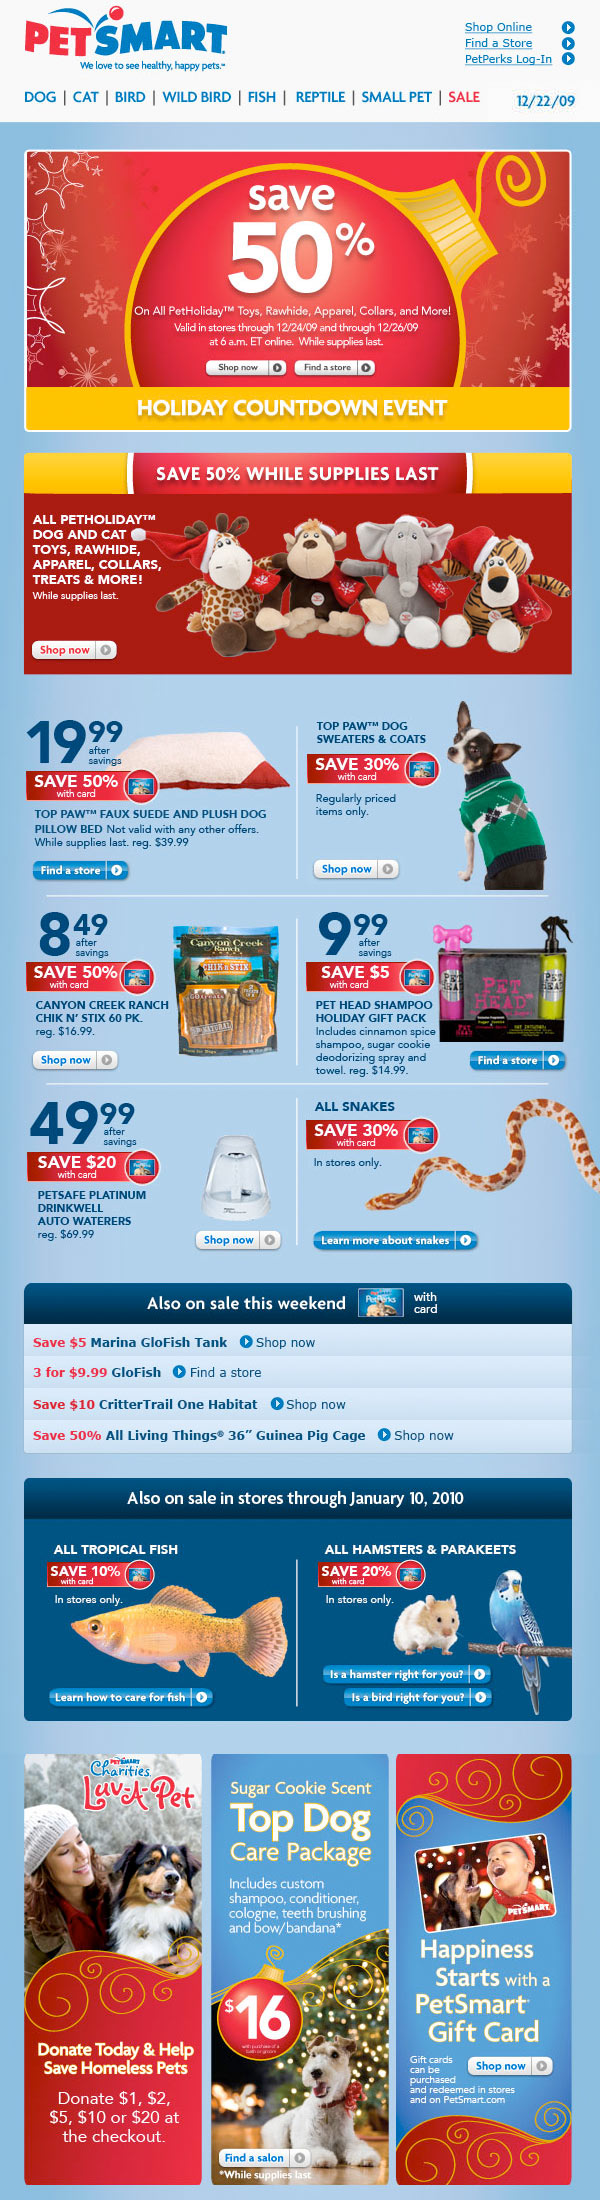 Pet Smart | Email Design